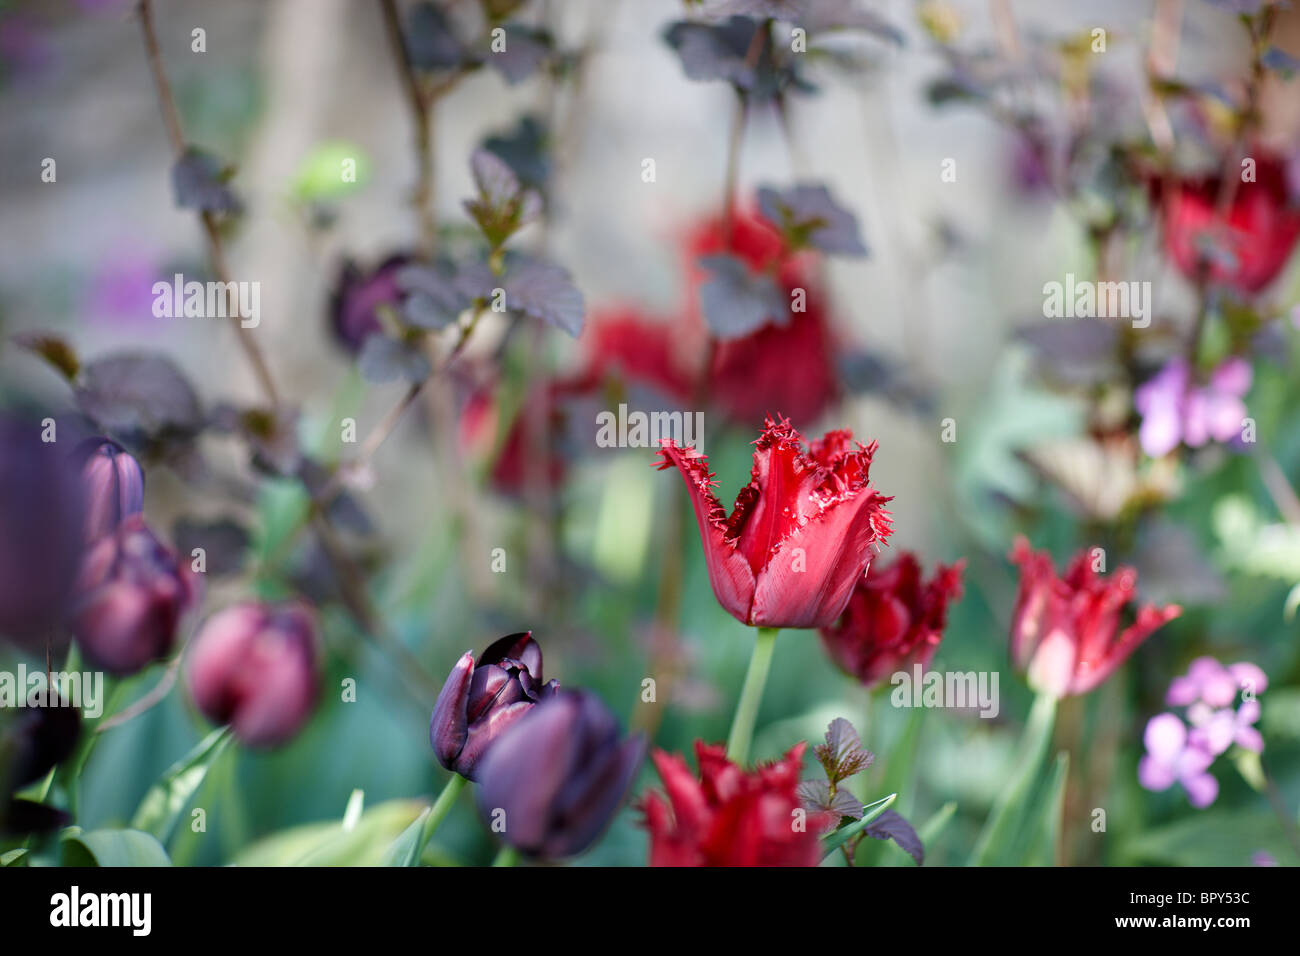 purple red black dark tulips - Stock Image